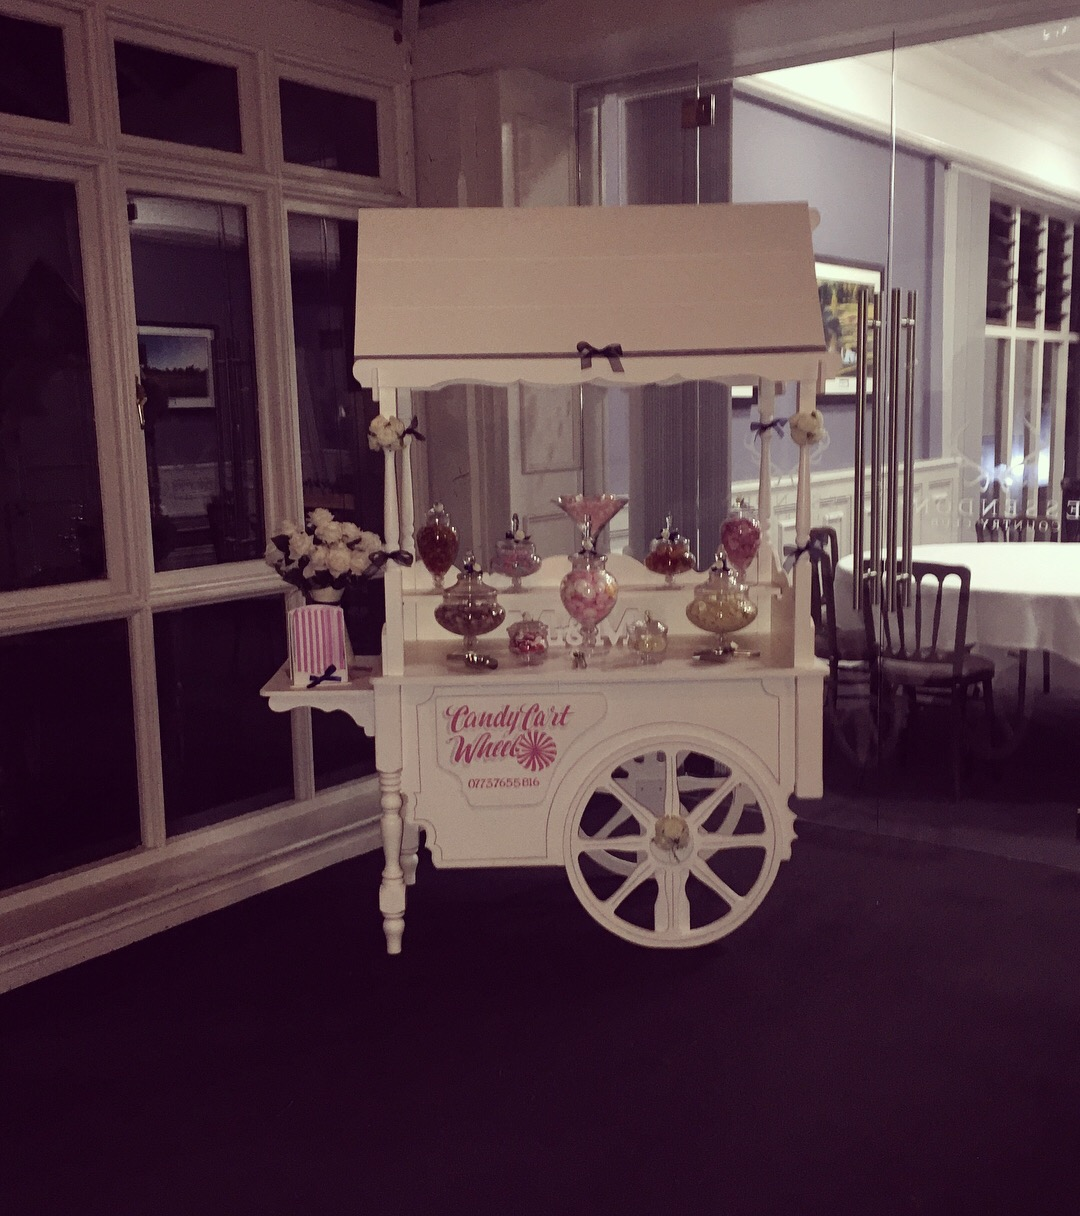 Candy Feast Navy Blue Wedding Cart - Essendon Country Club